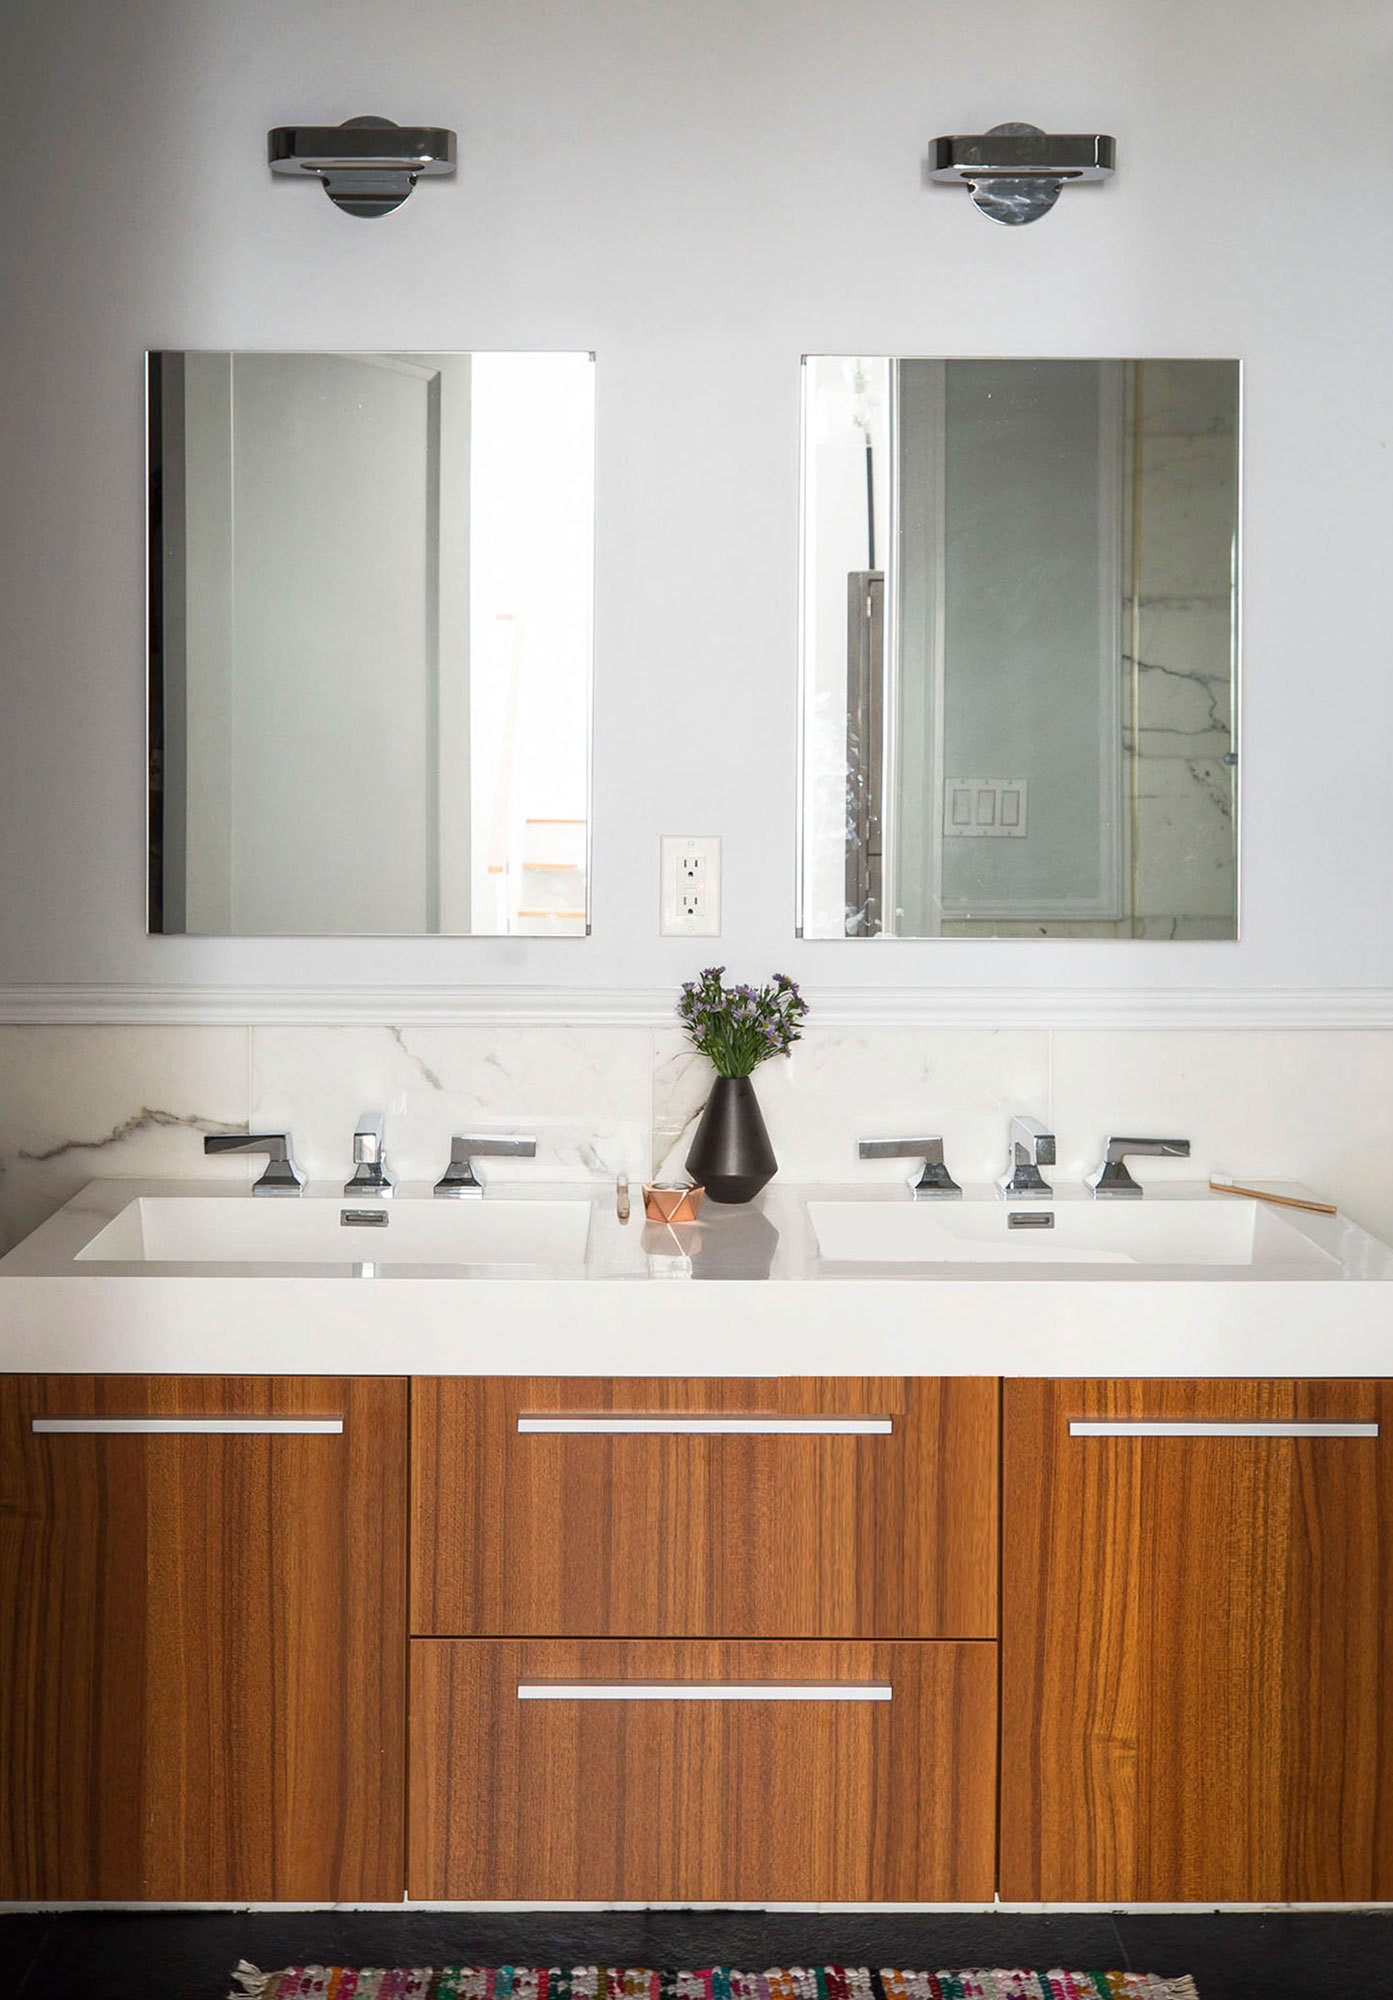 Other design features include a marble backsplash, wooden cabinetry, and sleek nickel hardware.